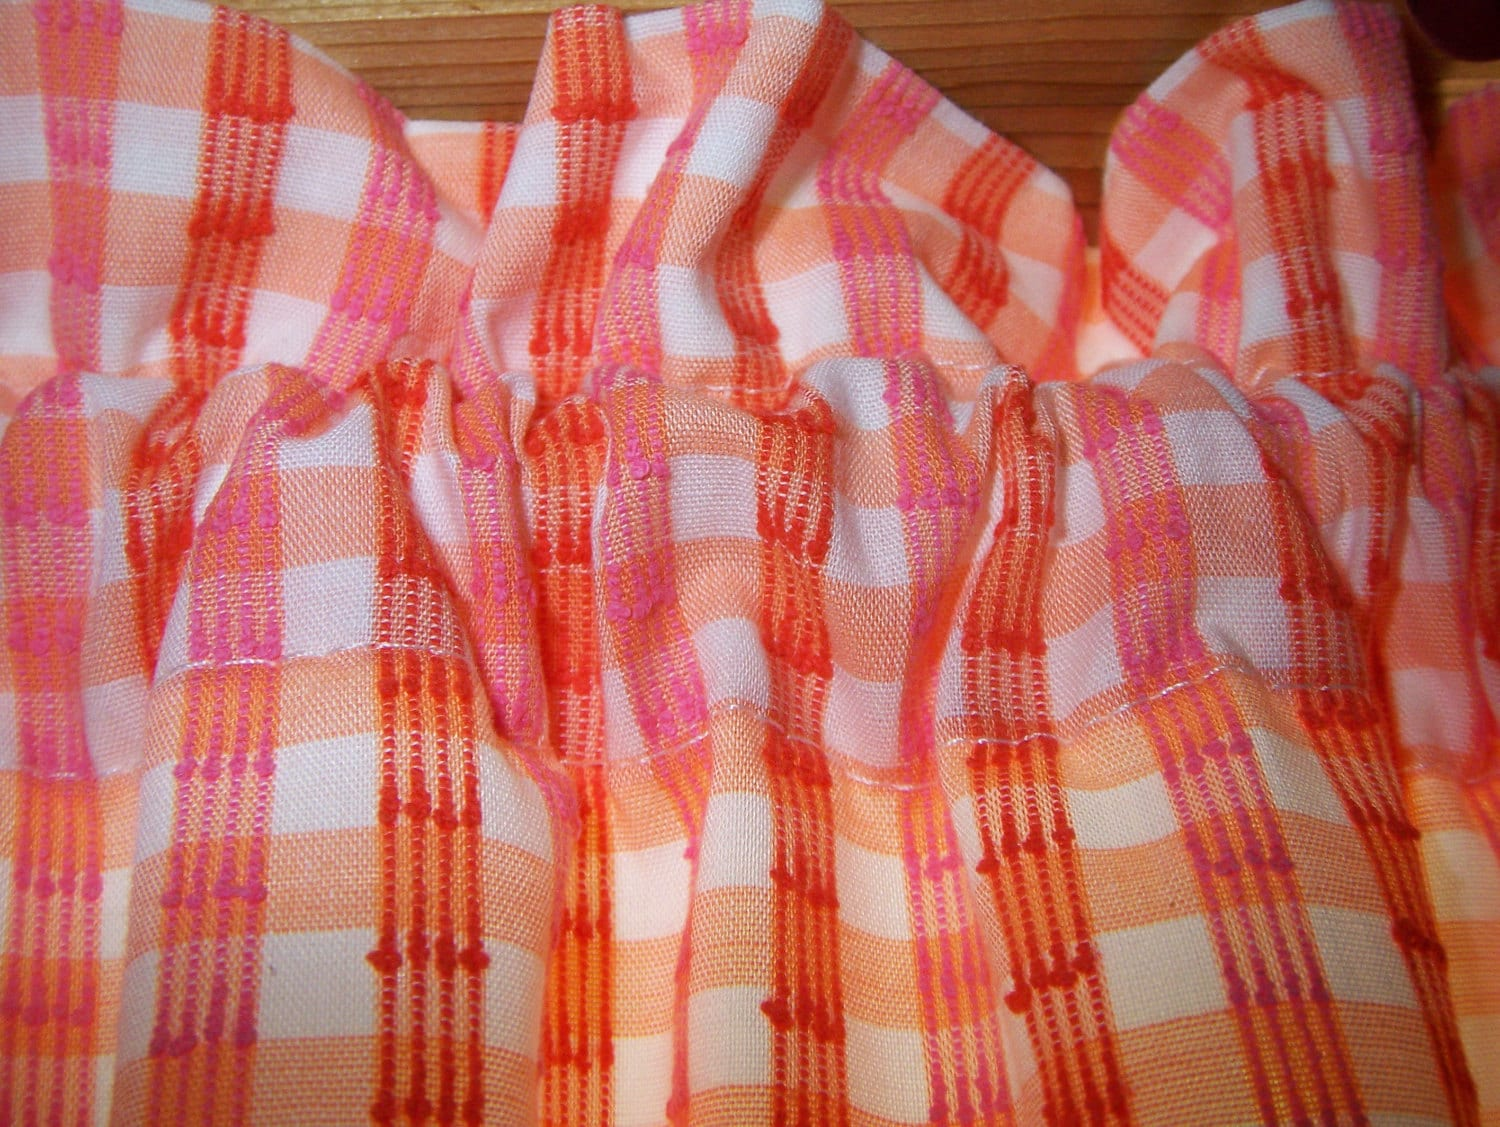 Kitchen Curtains Retro Vintage by CottageClever on Etsy